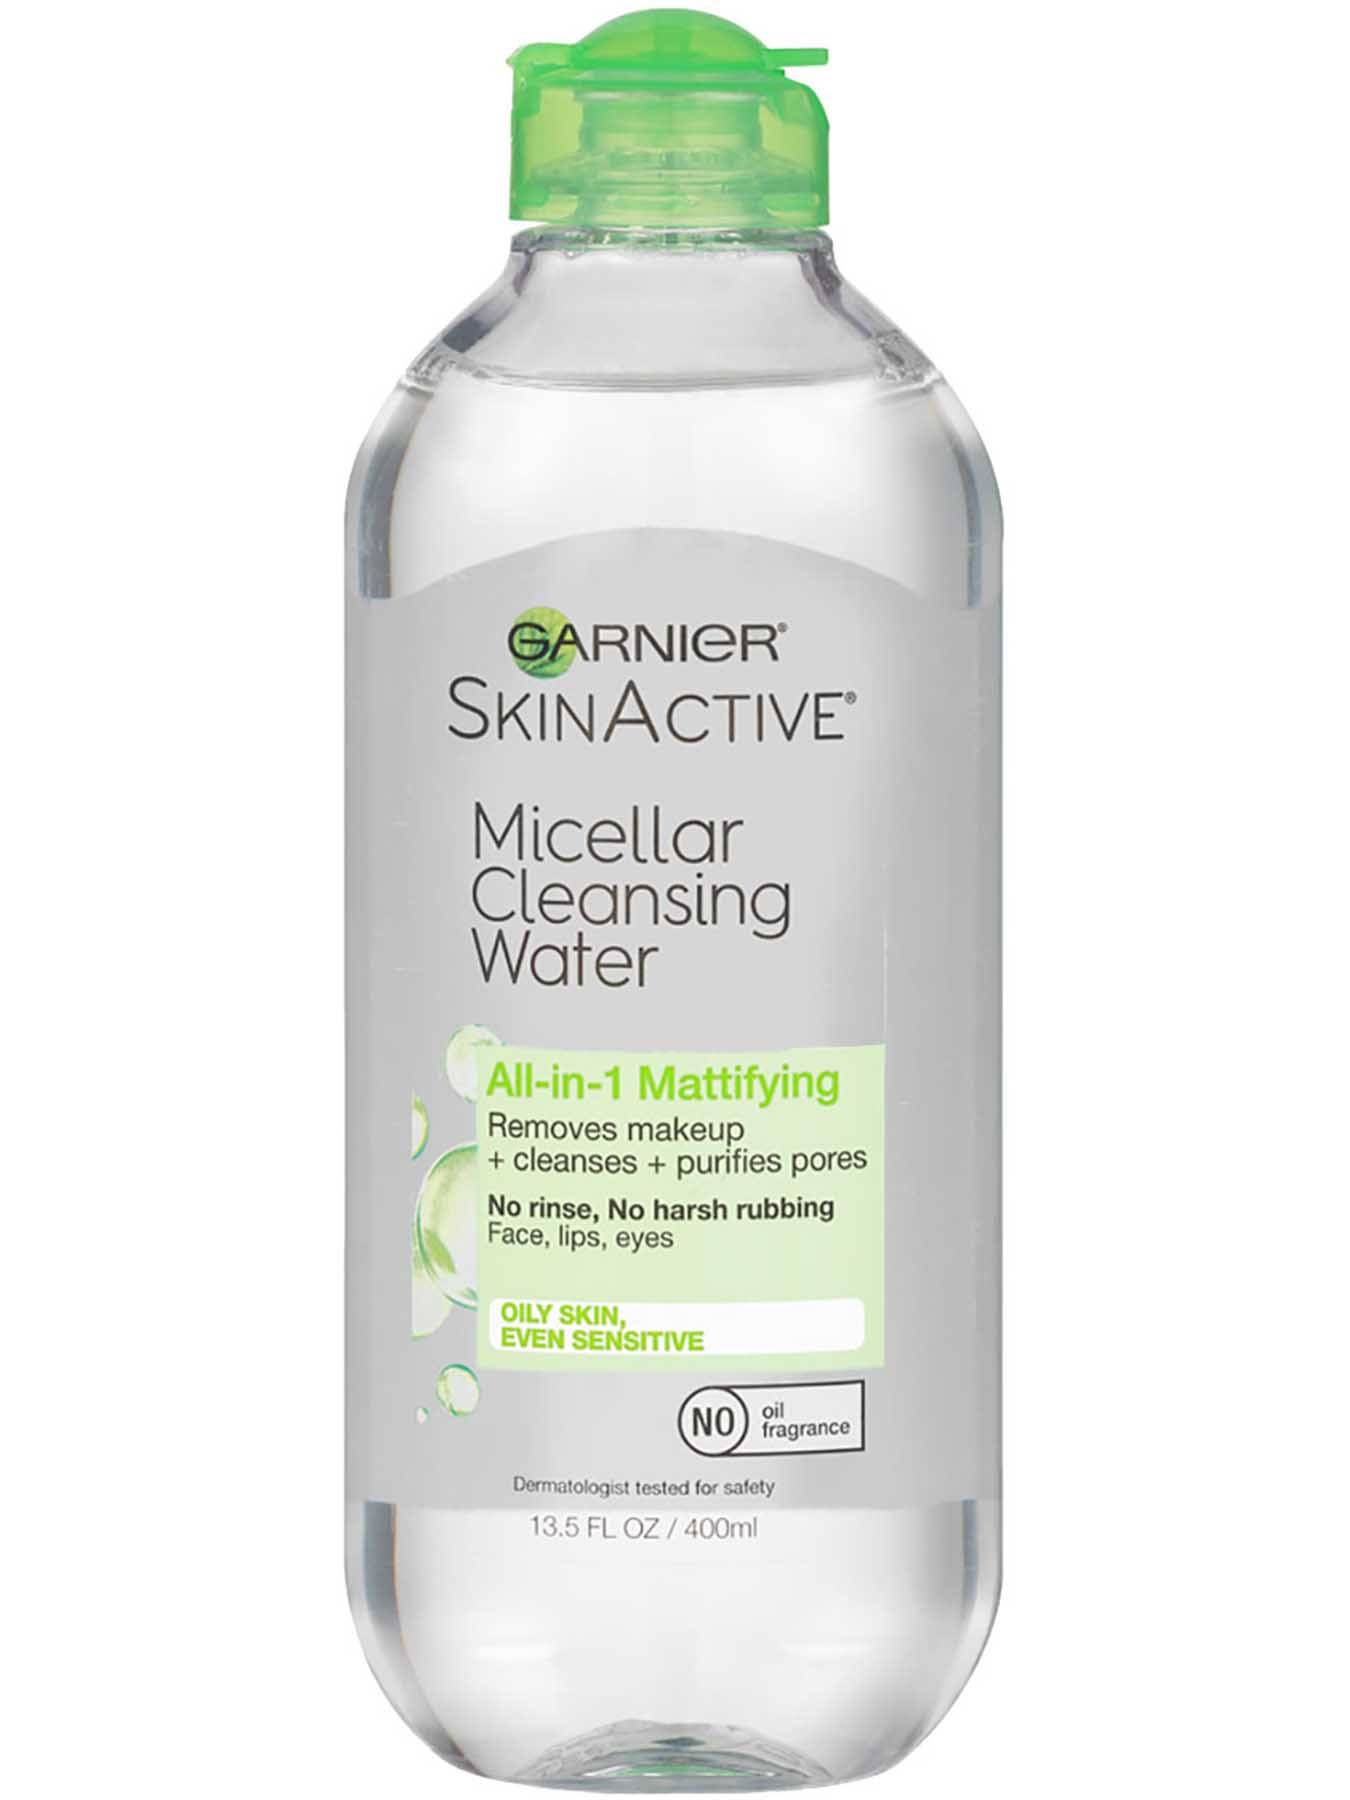 Garnier SkinActive Micellar Cleansing Water Make Up Remover - Skin Care Product for Oily Skin